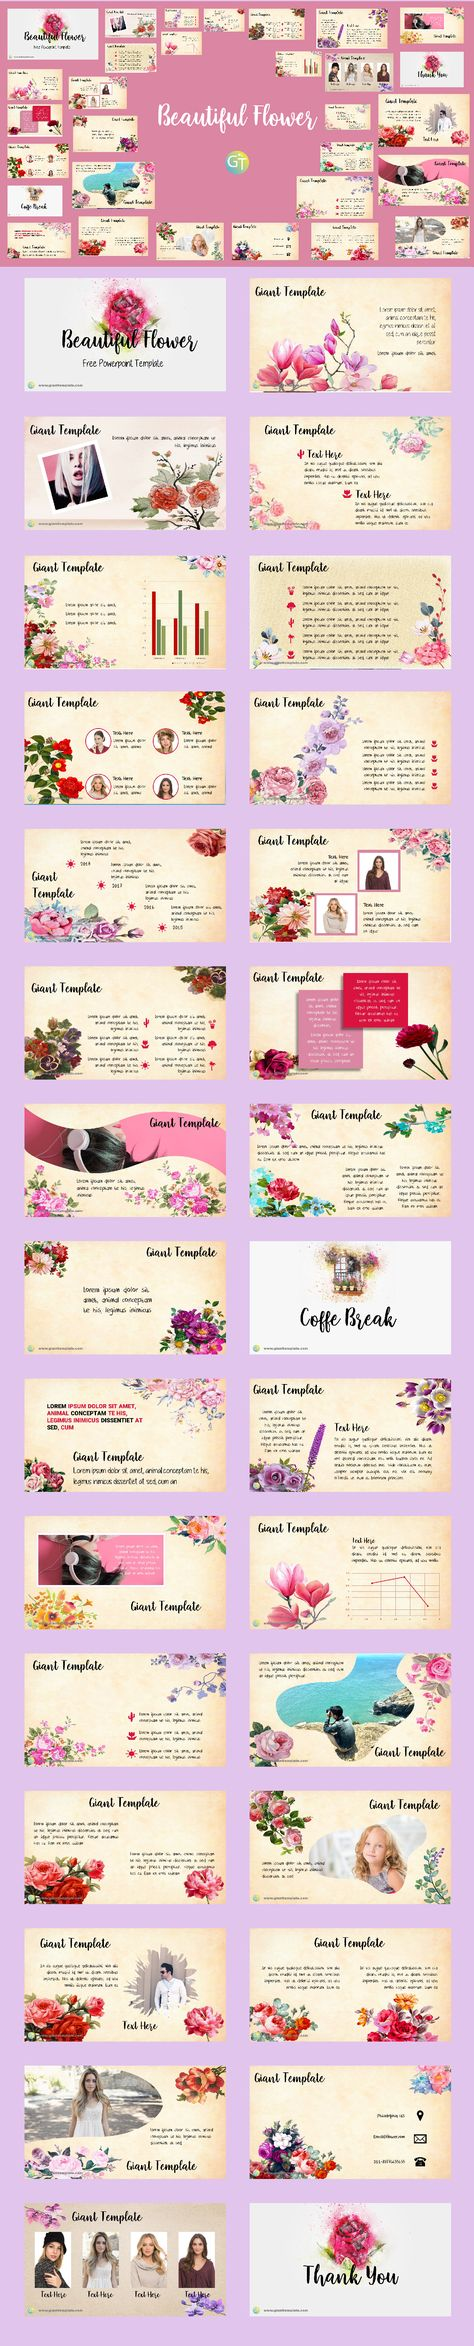 Beautiful flower free powerpoint template